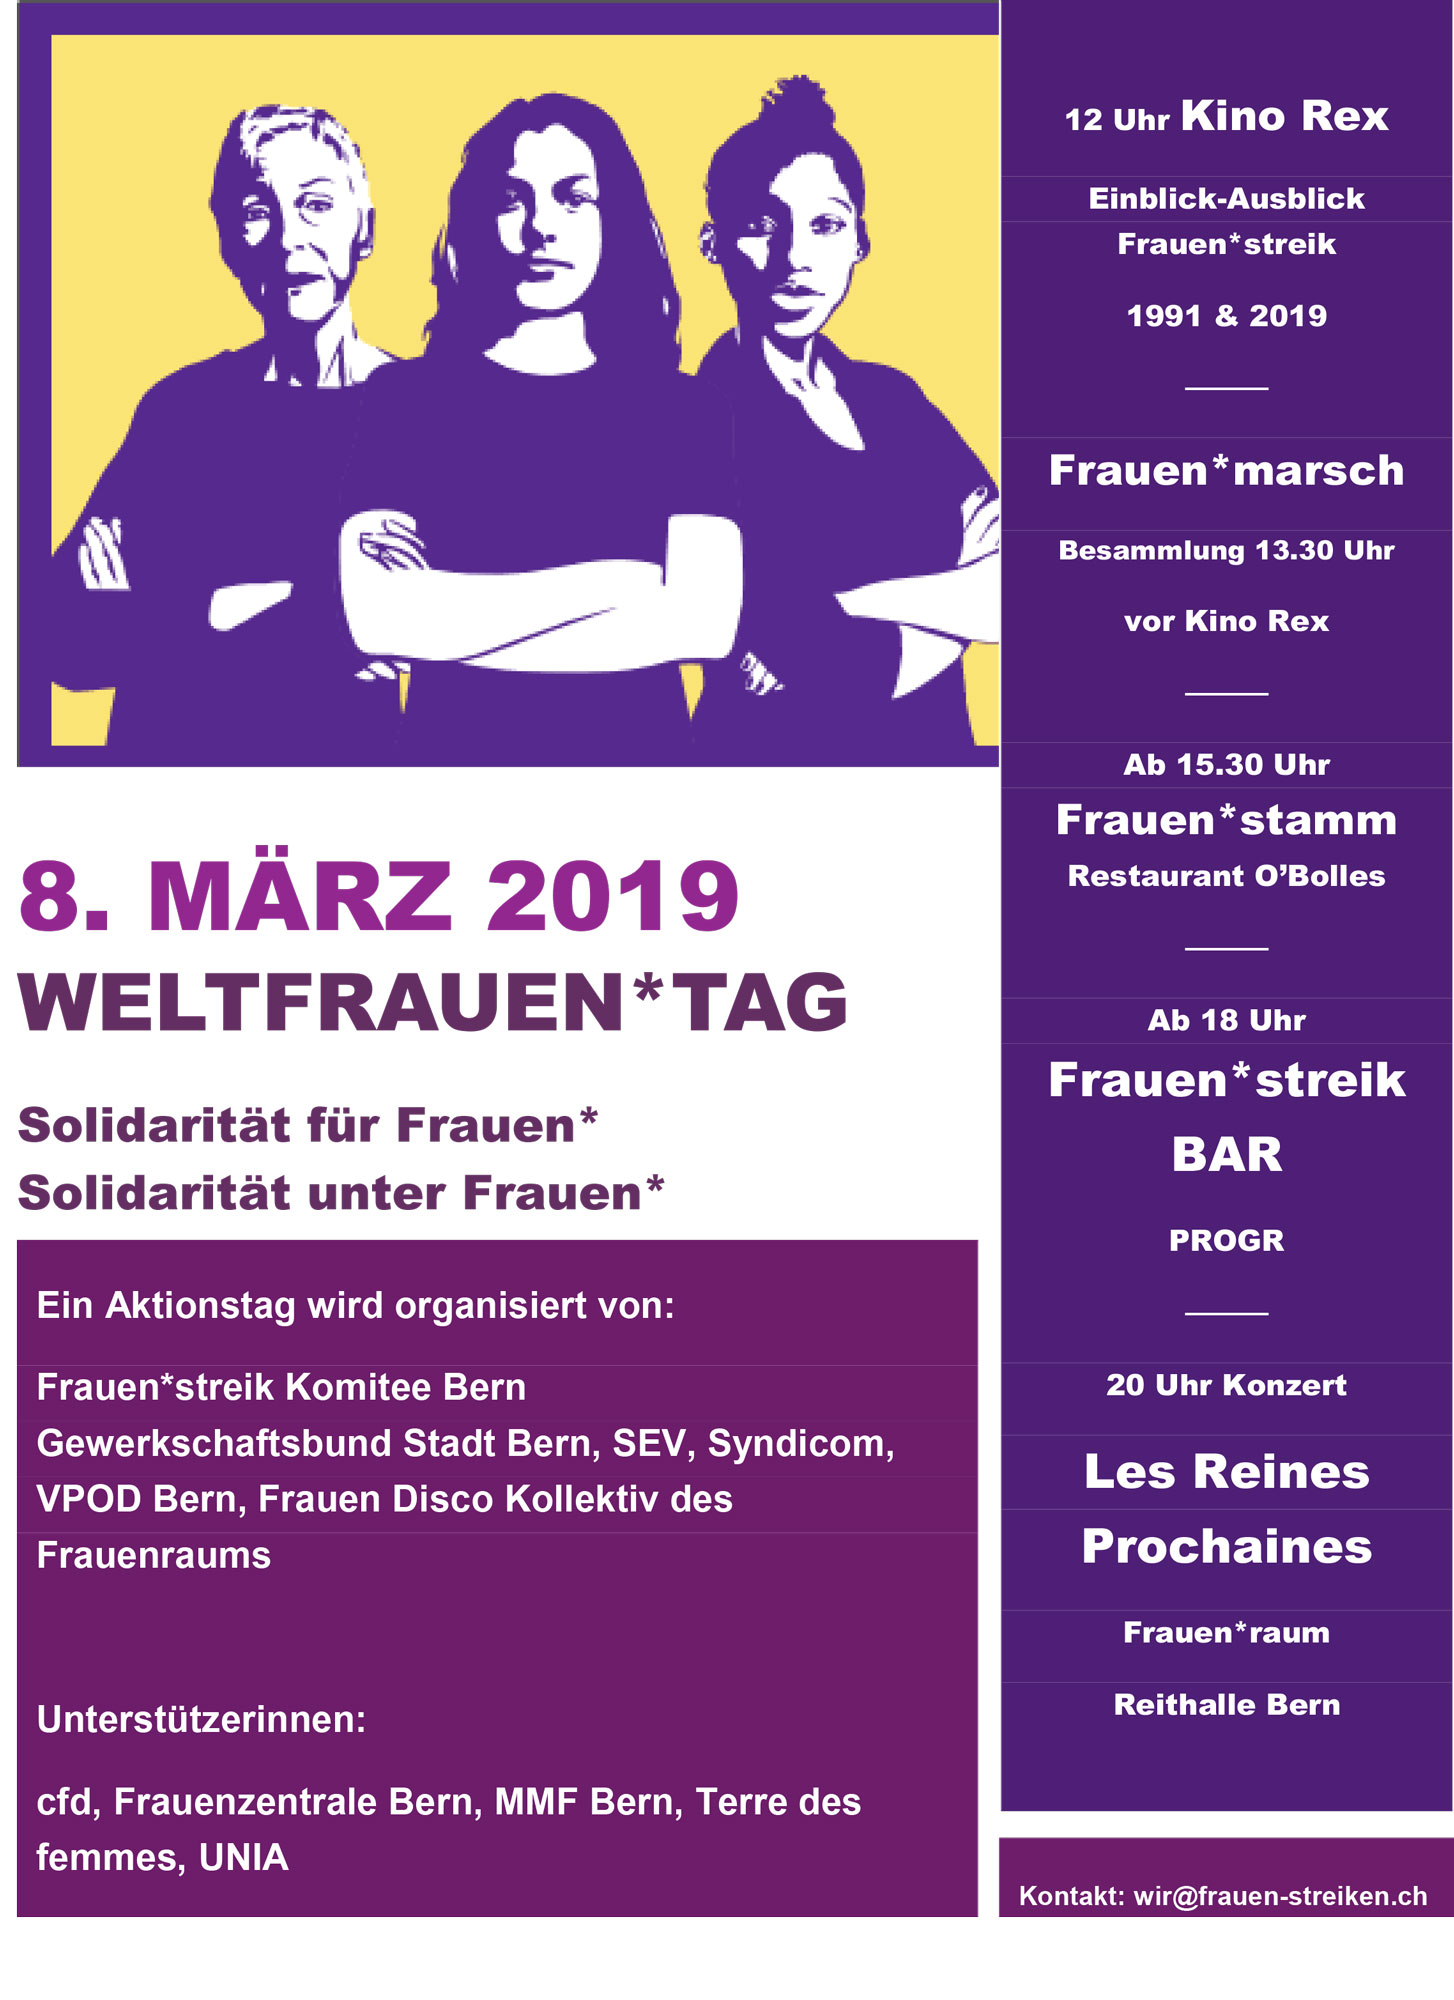 Weltfrauentag 8